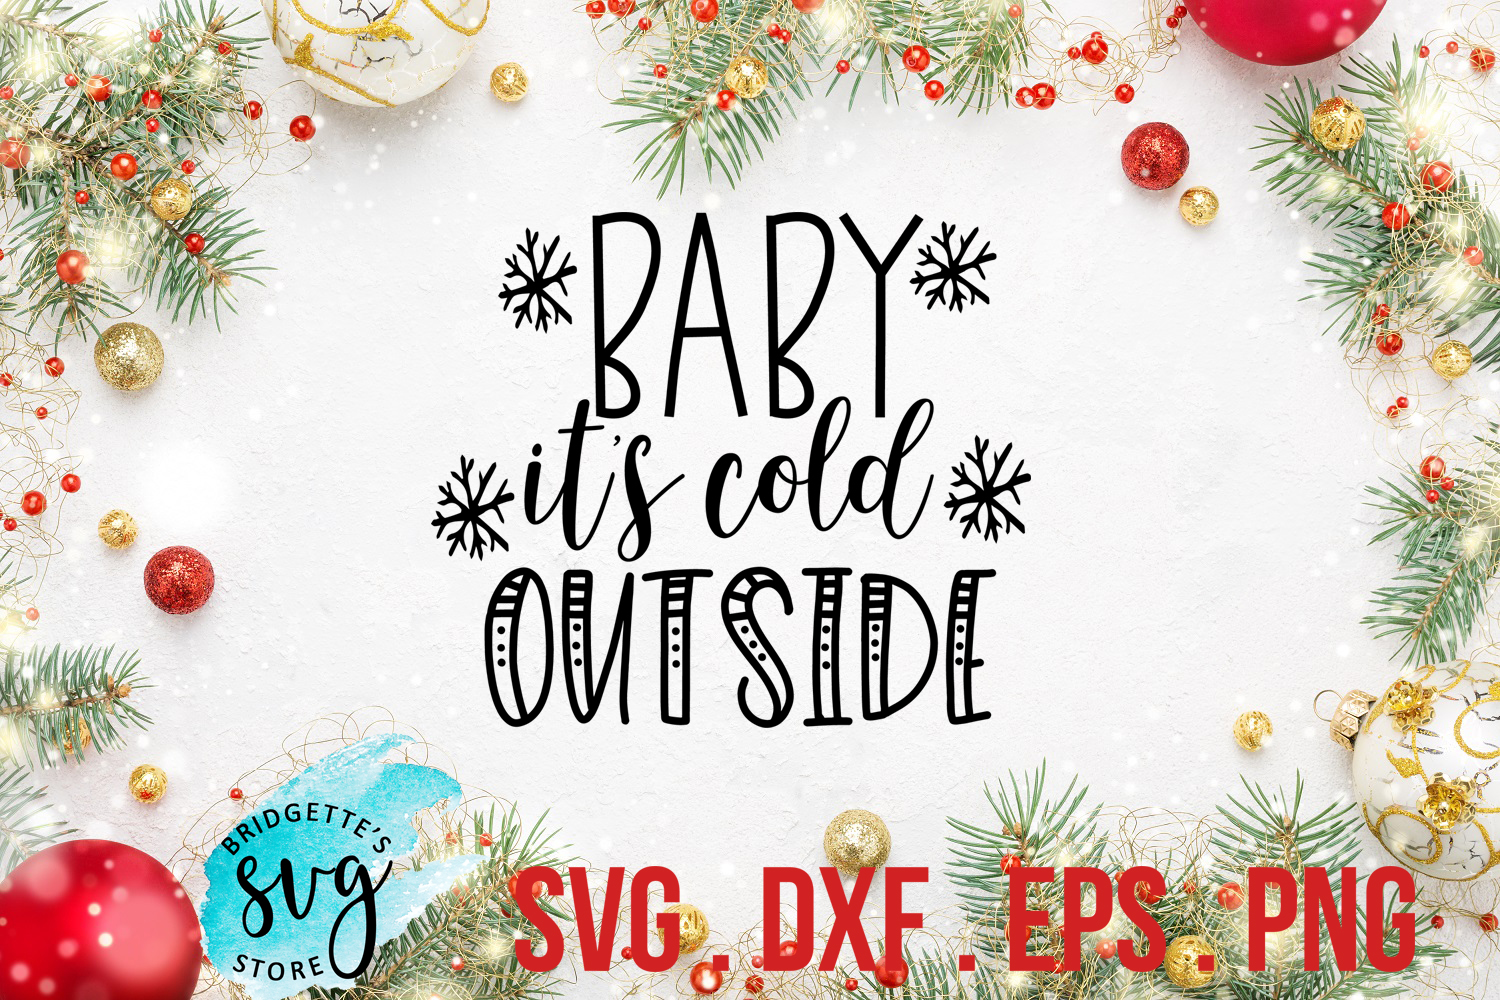 Baby it's Cold Outside SVG, DXF, PNG, EPS File example image 2